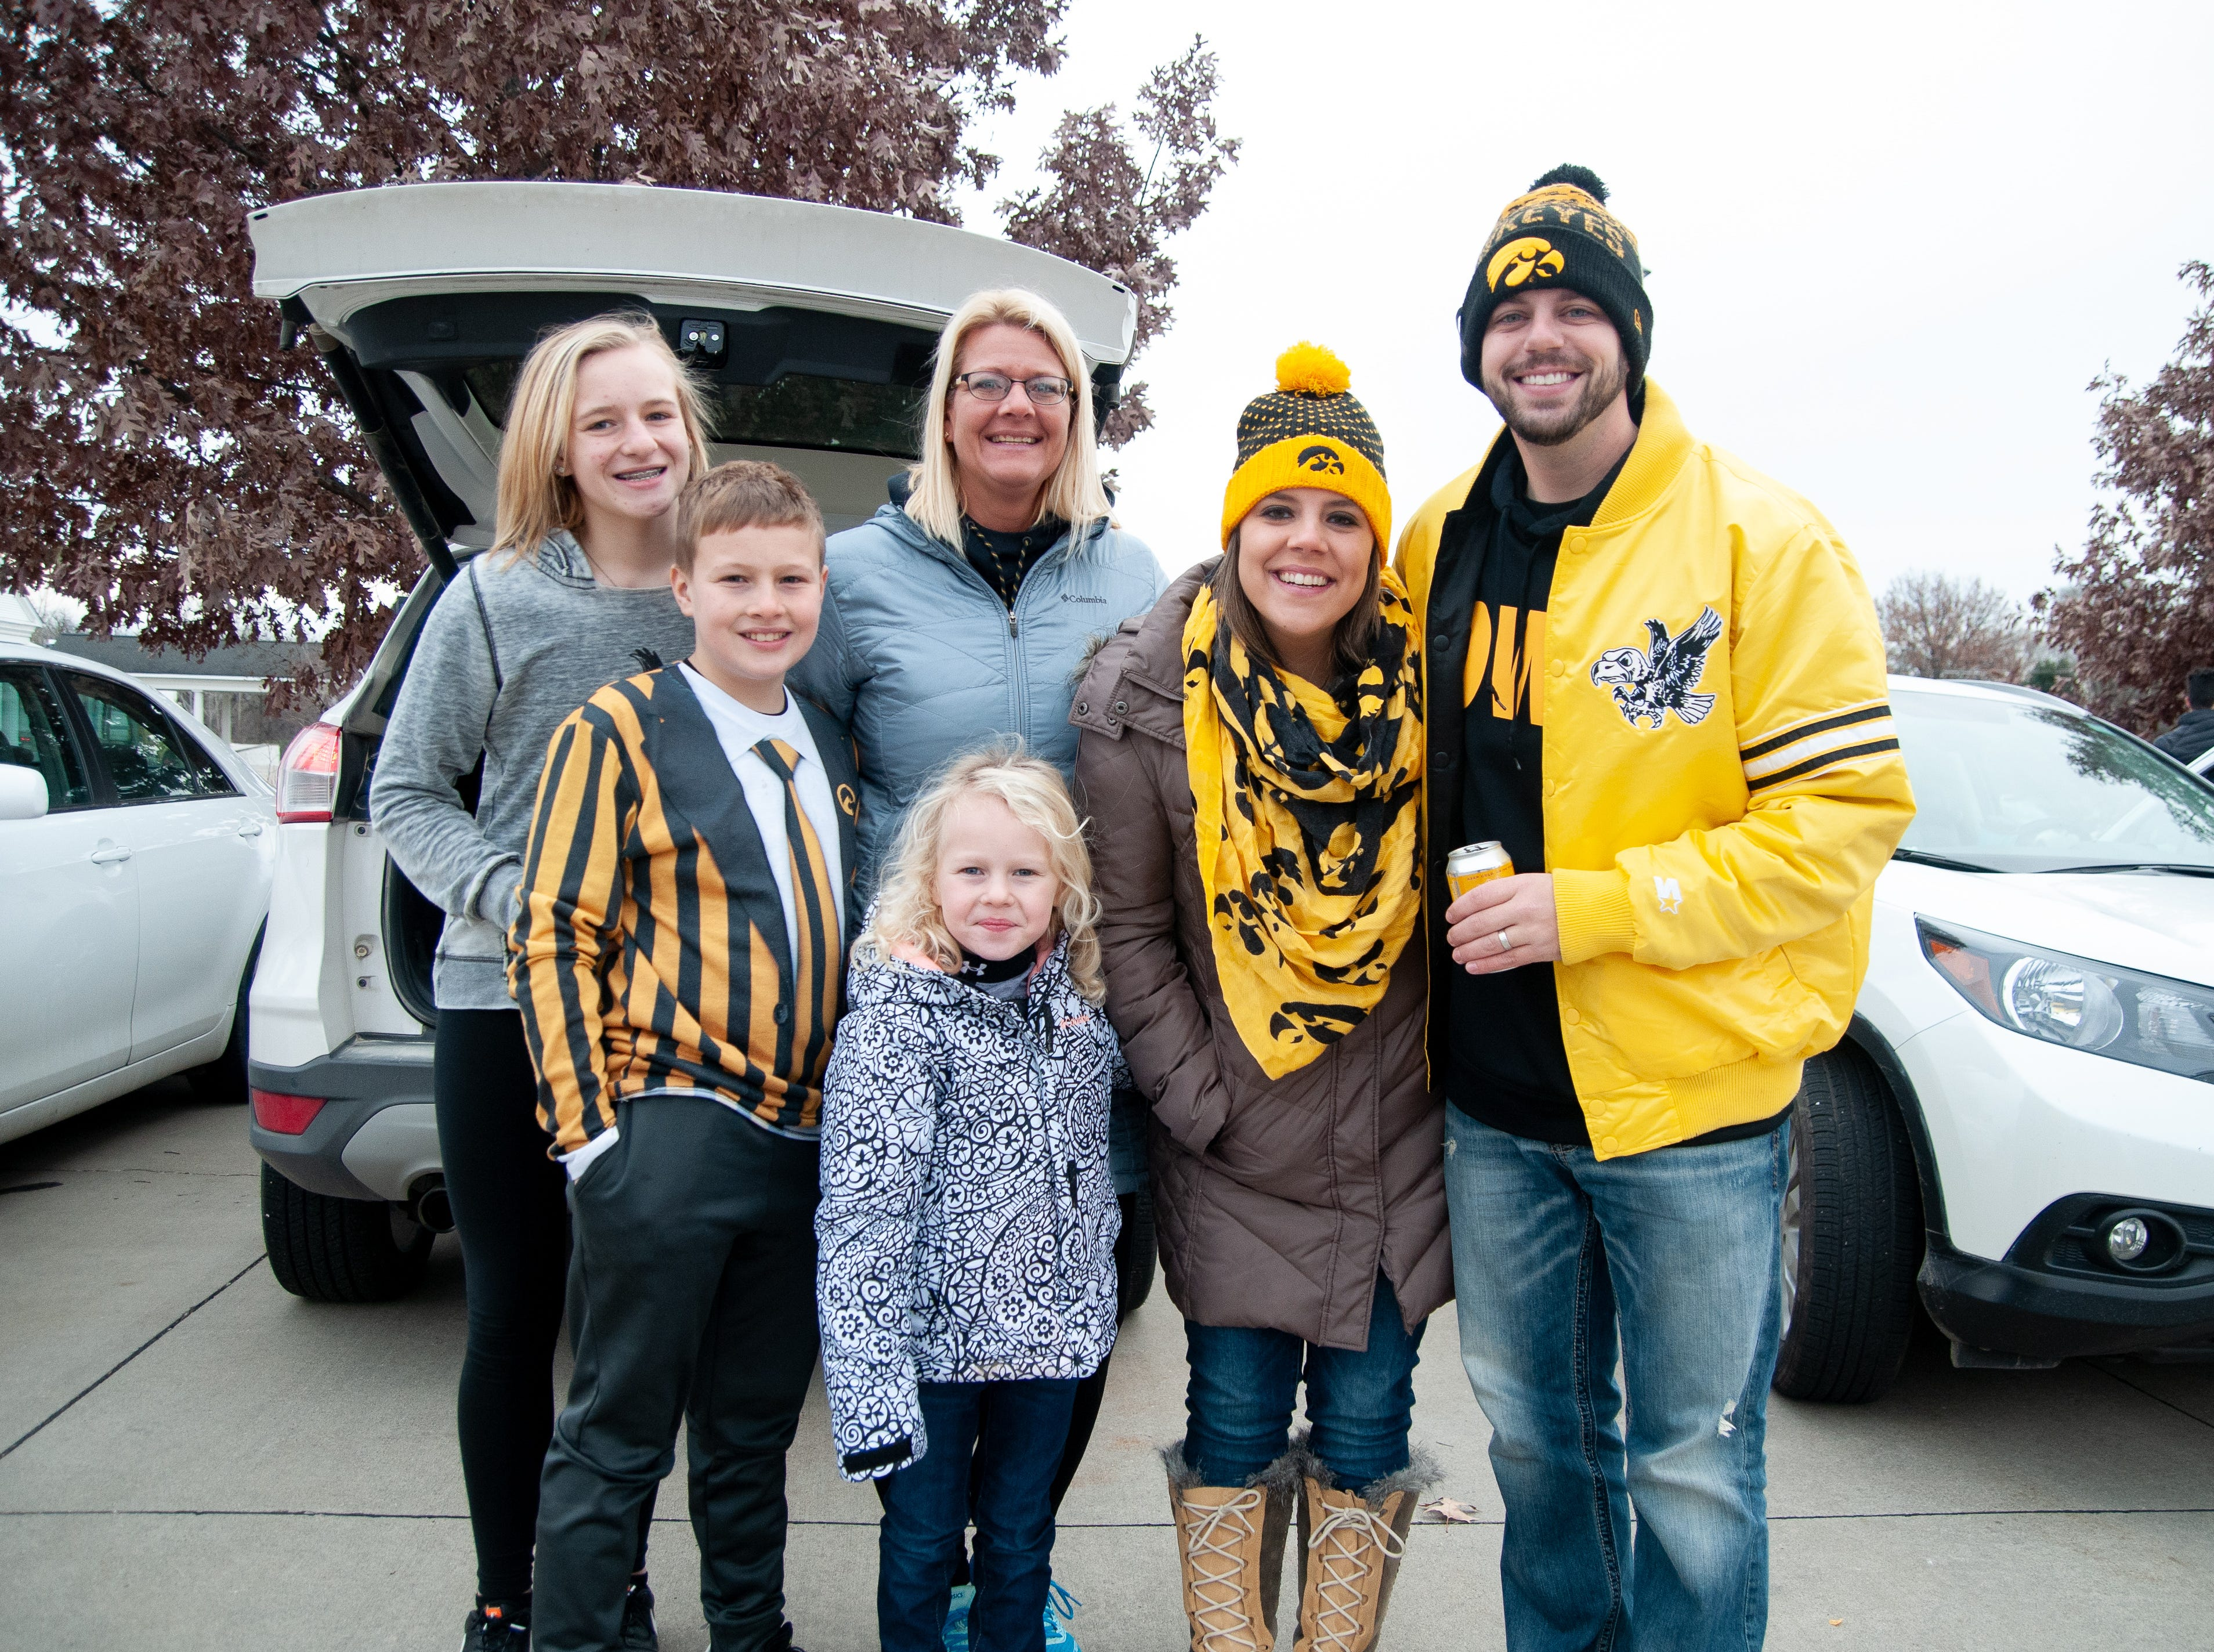 The Duff family, of Mason City, Friday, Nov. 23, 2018, while tailgating before the Iowa game against Nebraska in Iowa City.